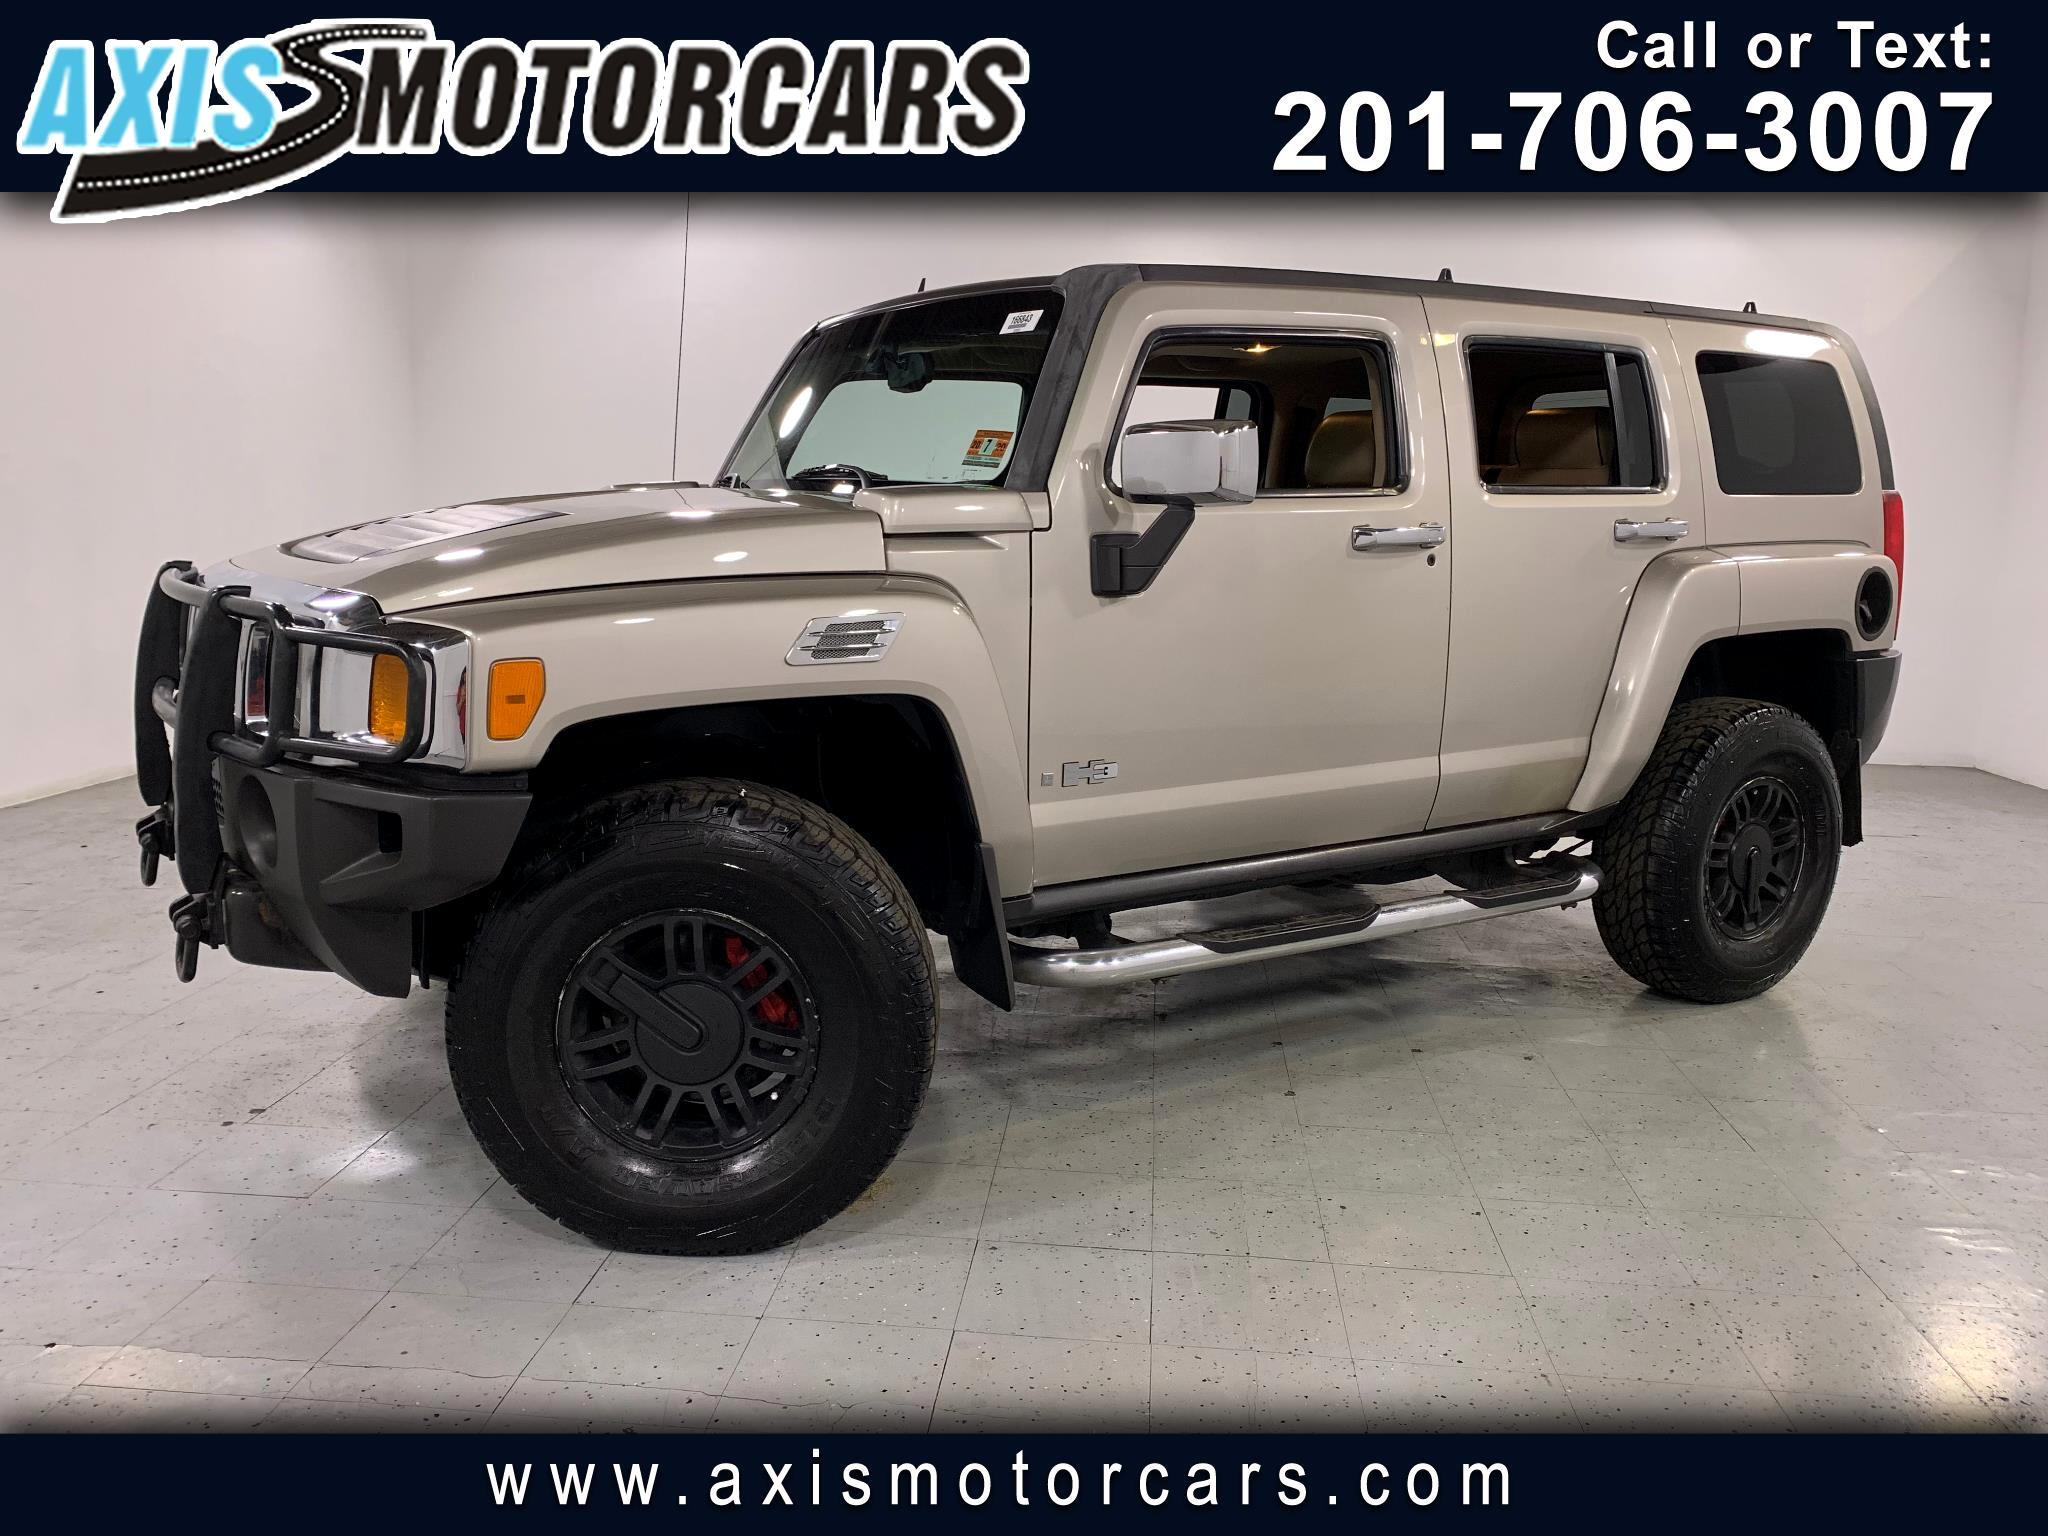 2006 HUMMER H3 w/Rear Entertainment System Sunroof